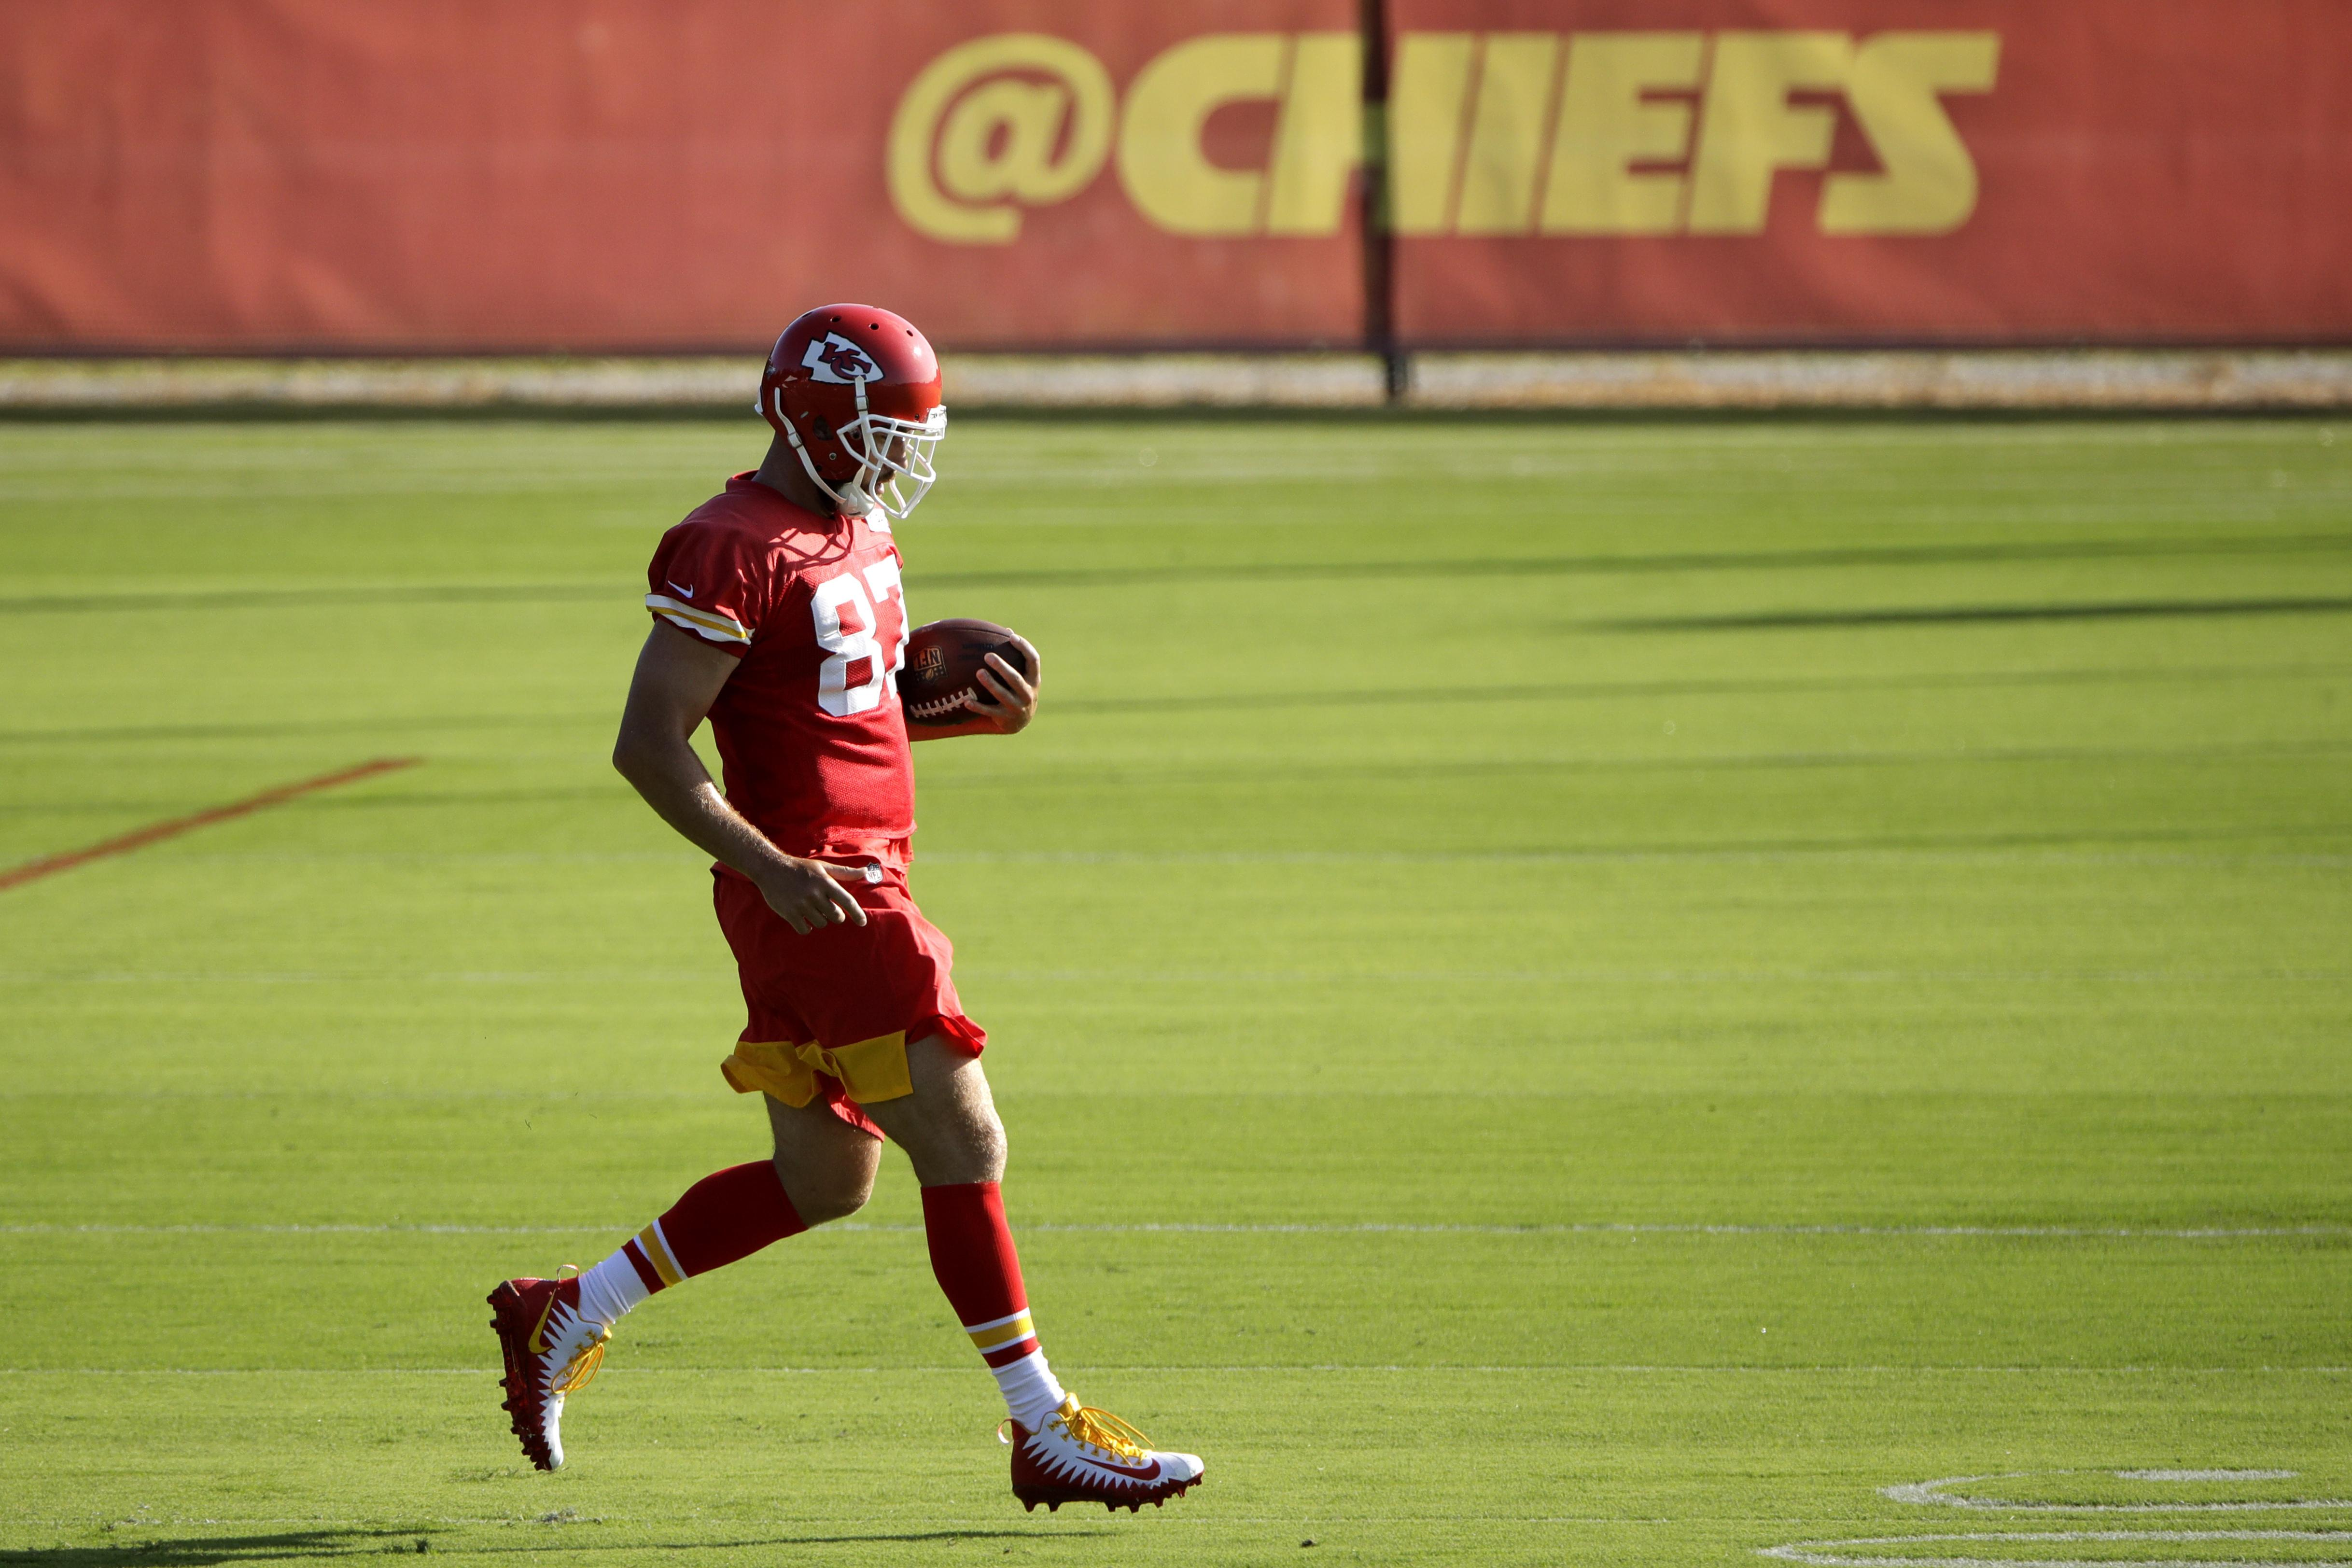 Chiefs Tight End Travis Kelce Back At Practice After Ankle